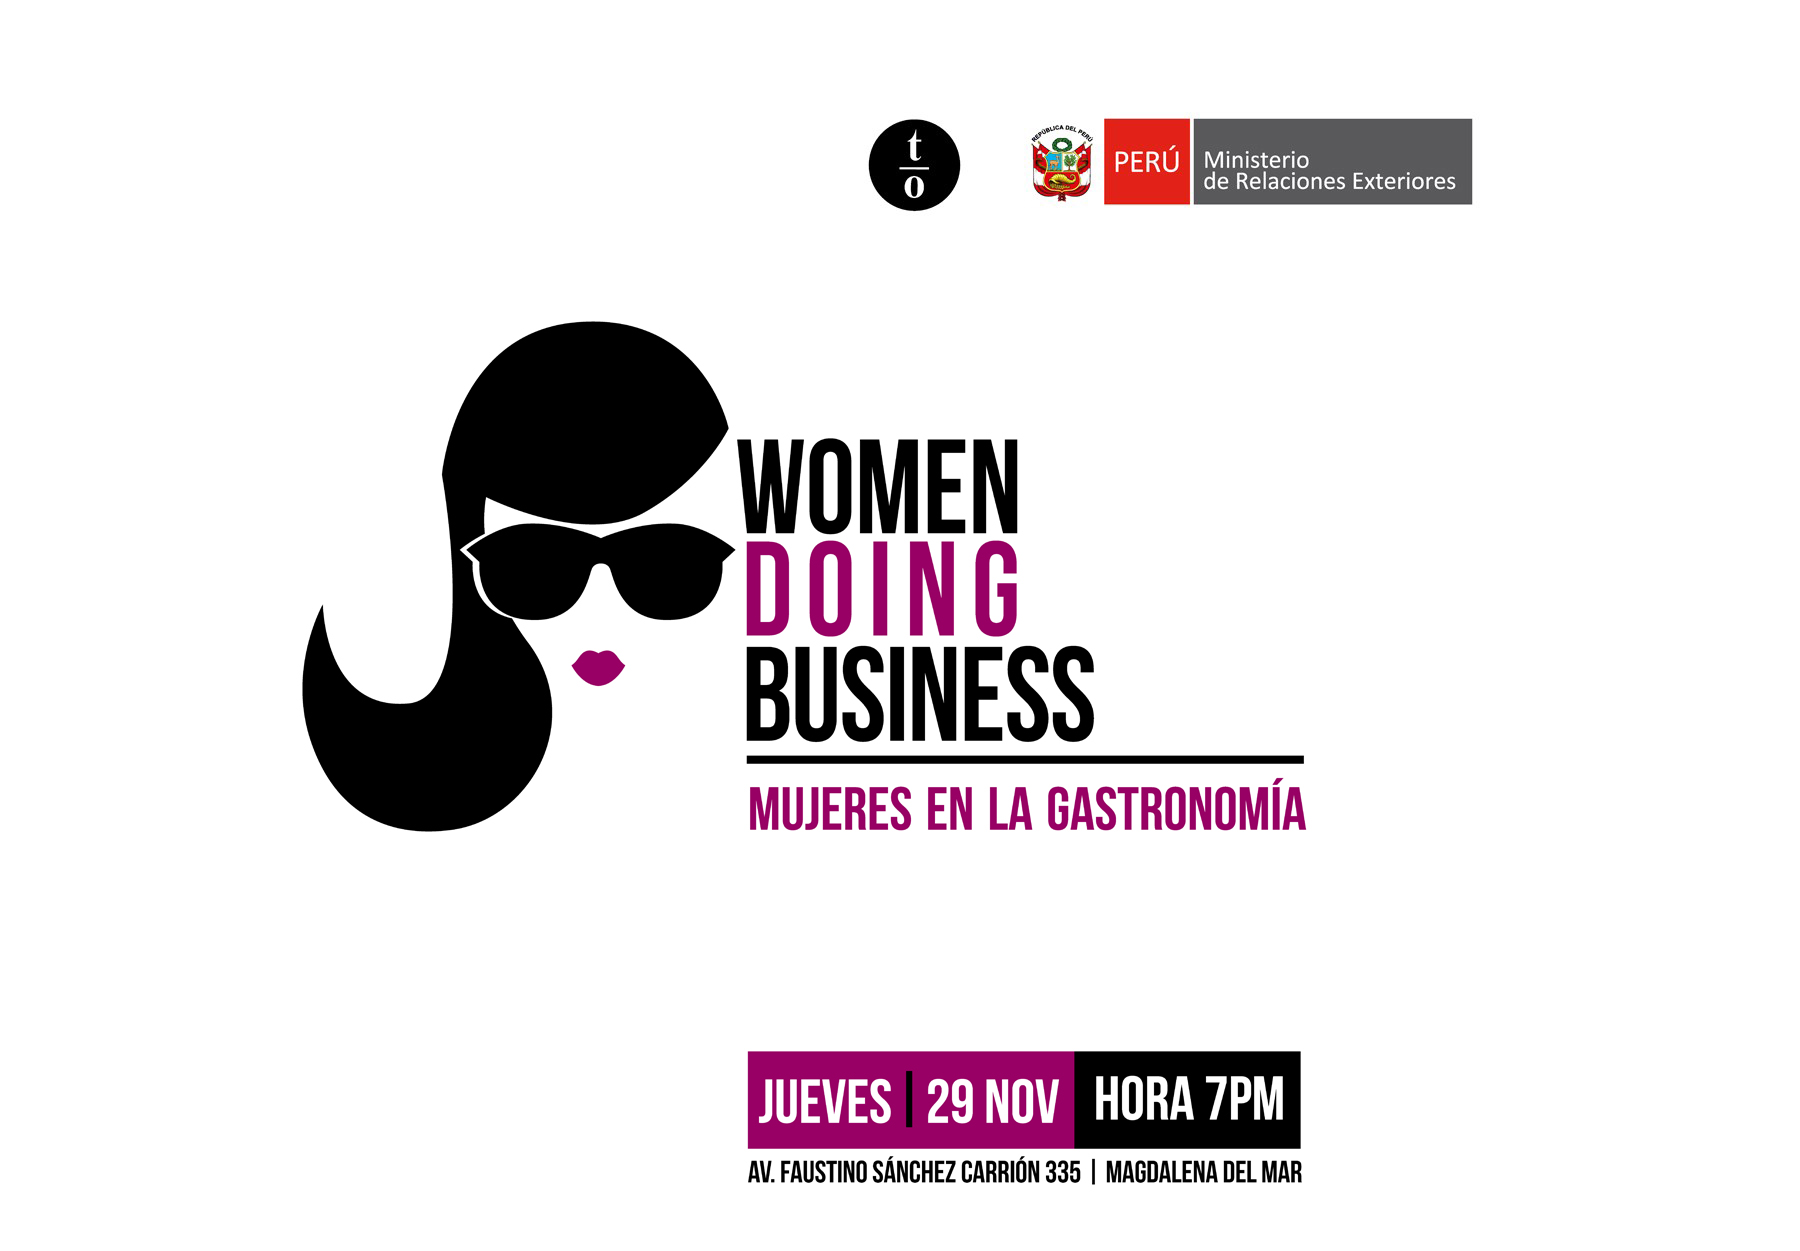 Women Doing Business - Gastronomía